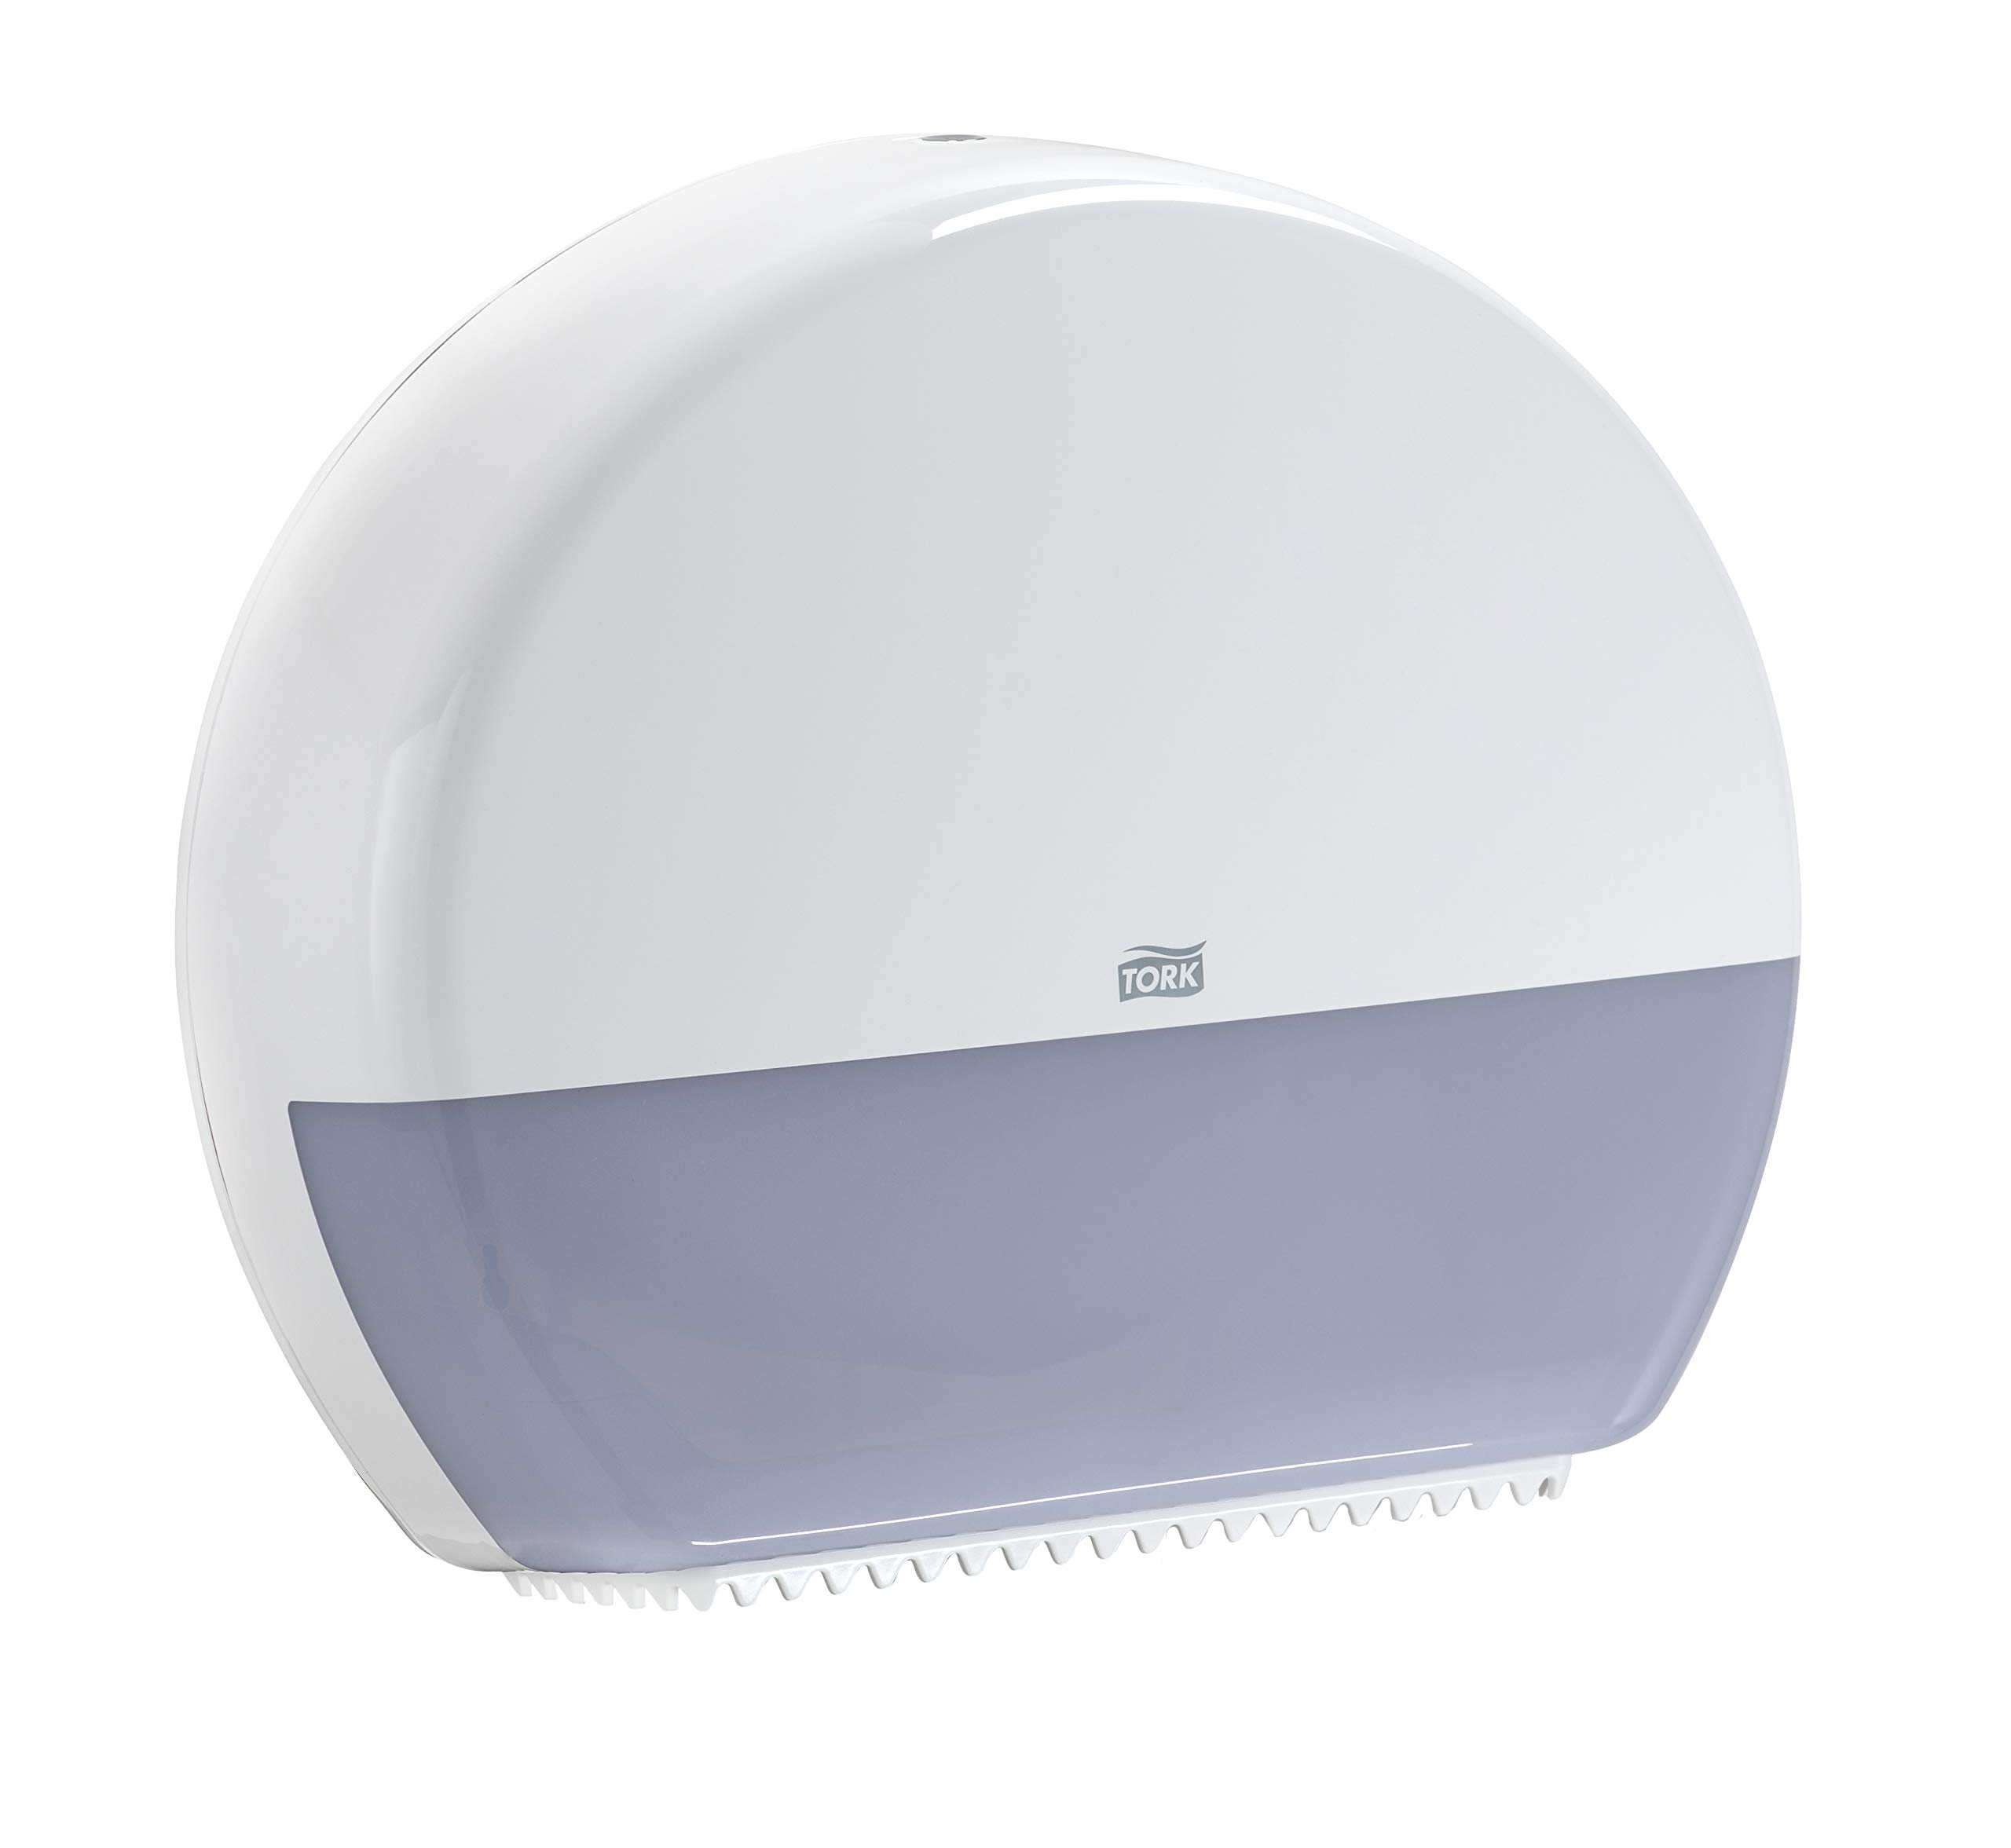 Tork 554020A Elevation Jumbo Bath Tissue Roll Dispenser, 14.2'' Height x 17.2'' Width x 5.2'' Depth, White (Case of 1 Dispenser) for use with Tork 12021502 and 11010402